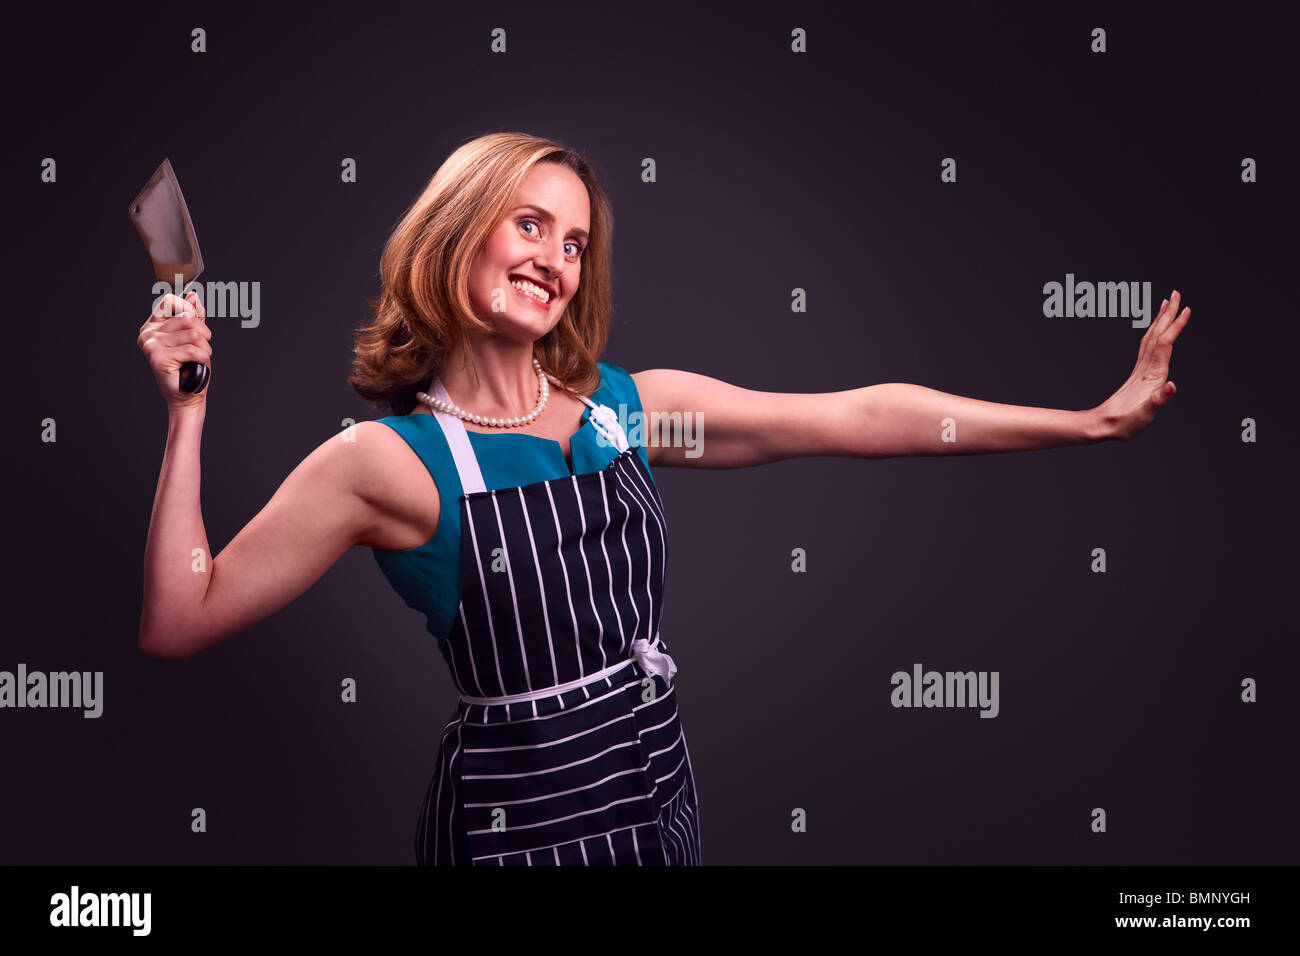 Glamorous housewife wearing butcher's apron and holding meat cleaver - Stock Image